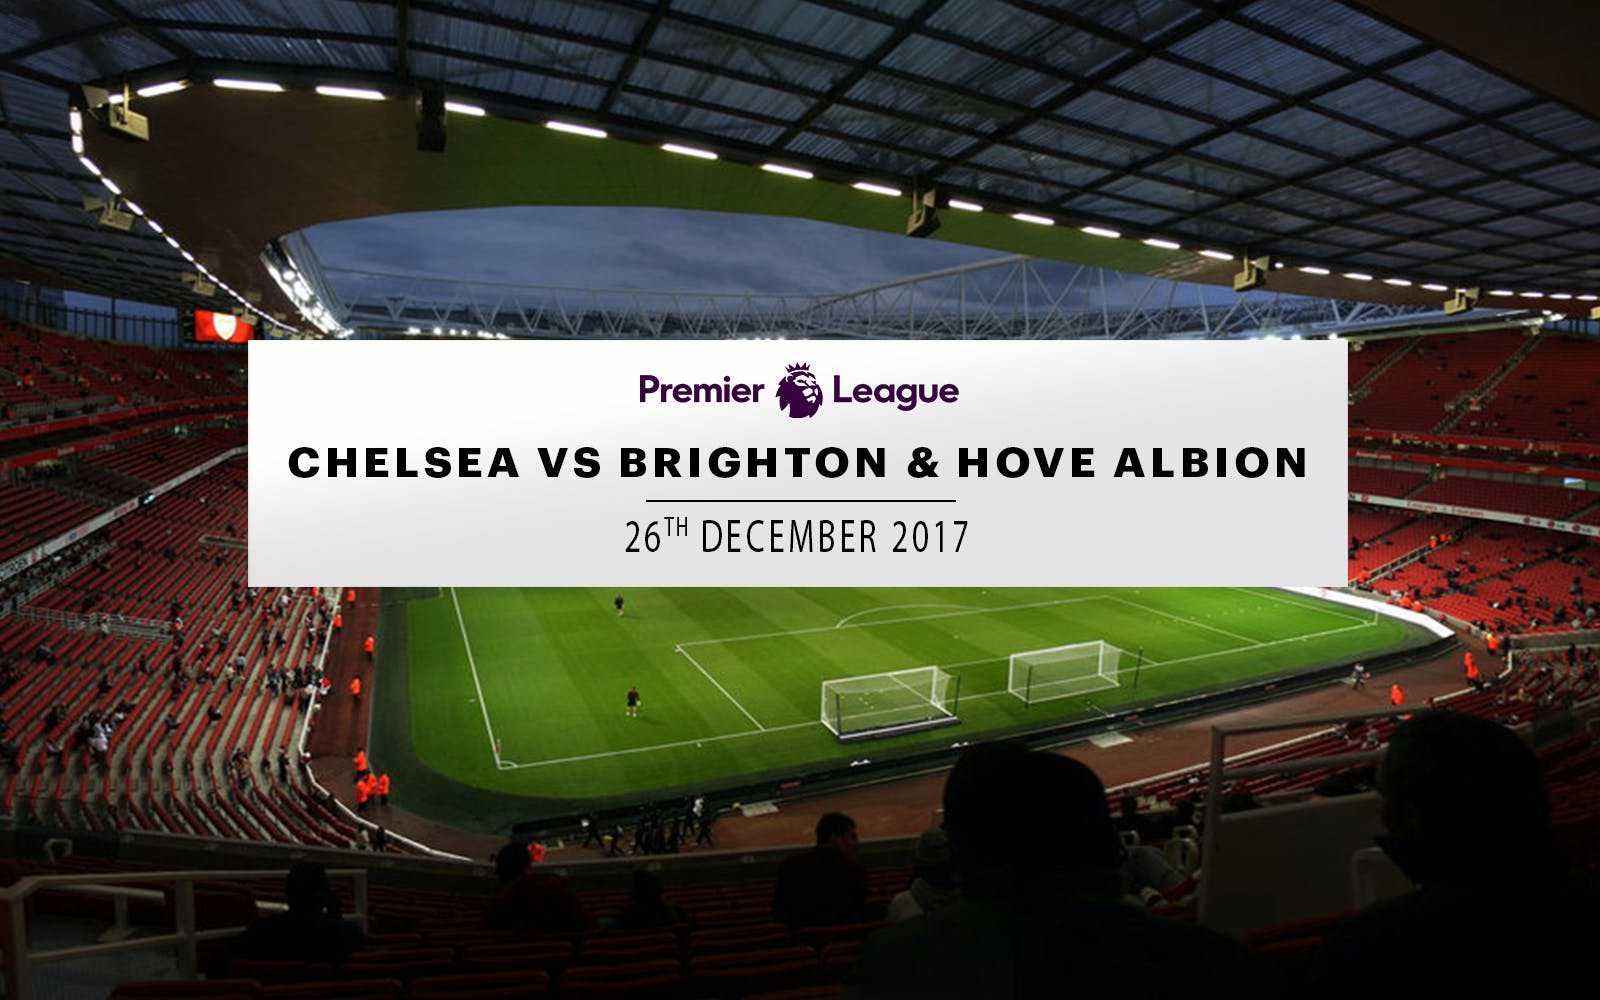 chelsea vs brighton & hove albion - 26th december 2017-1